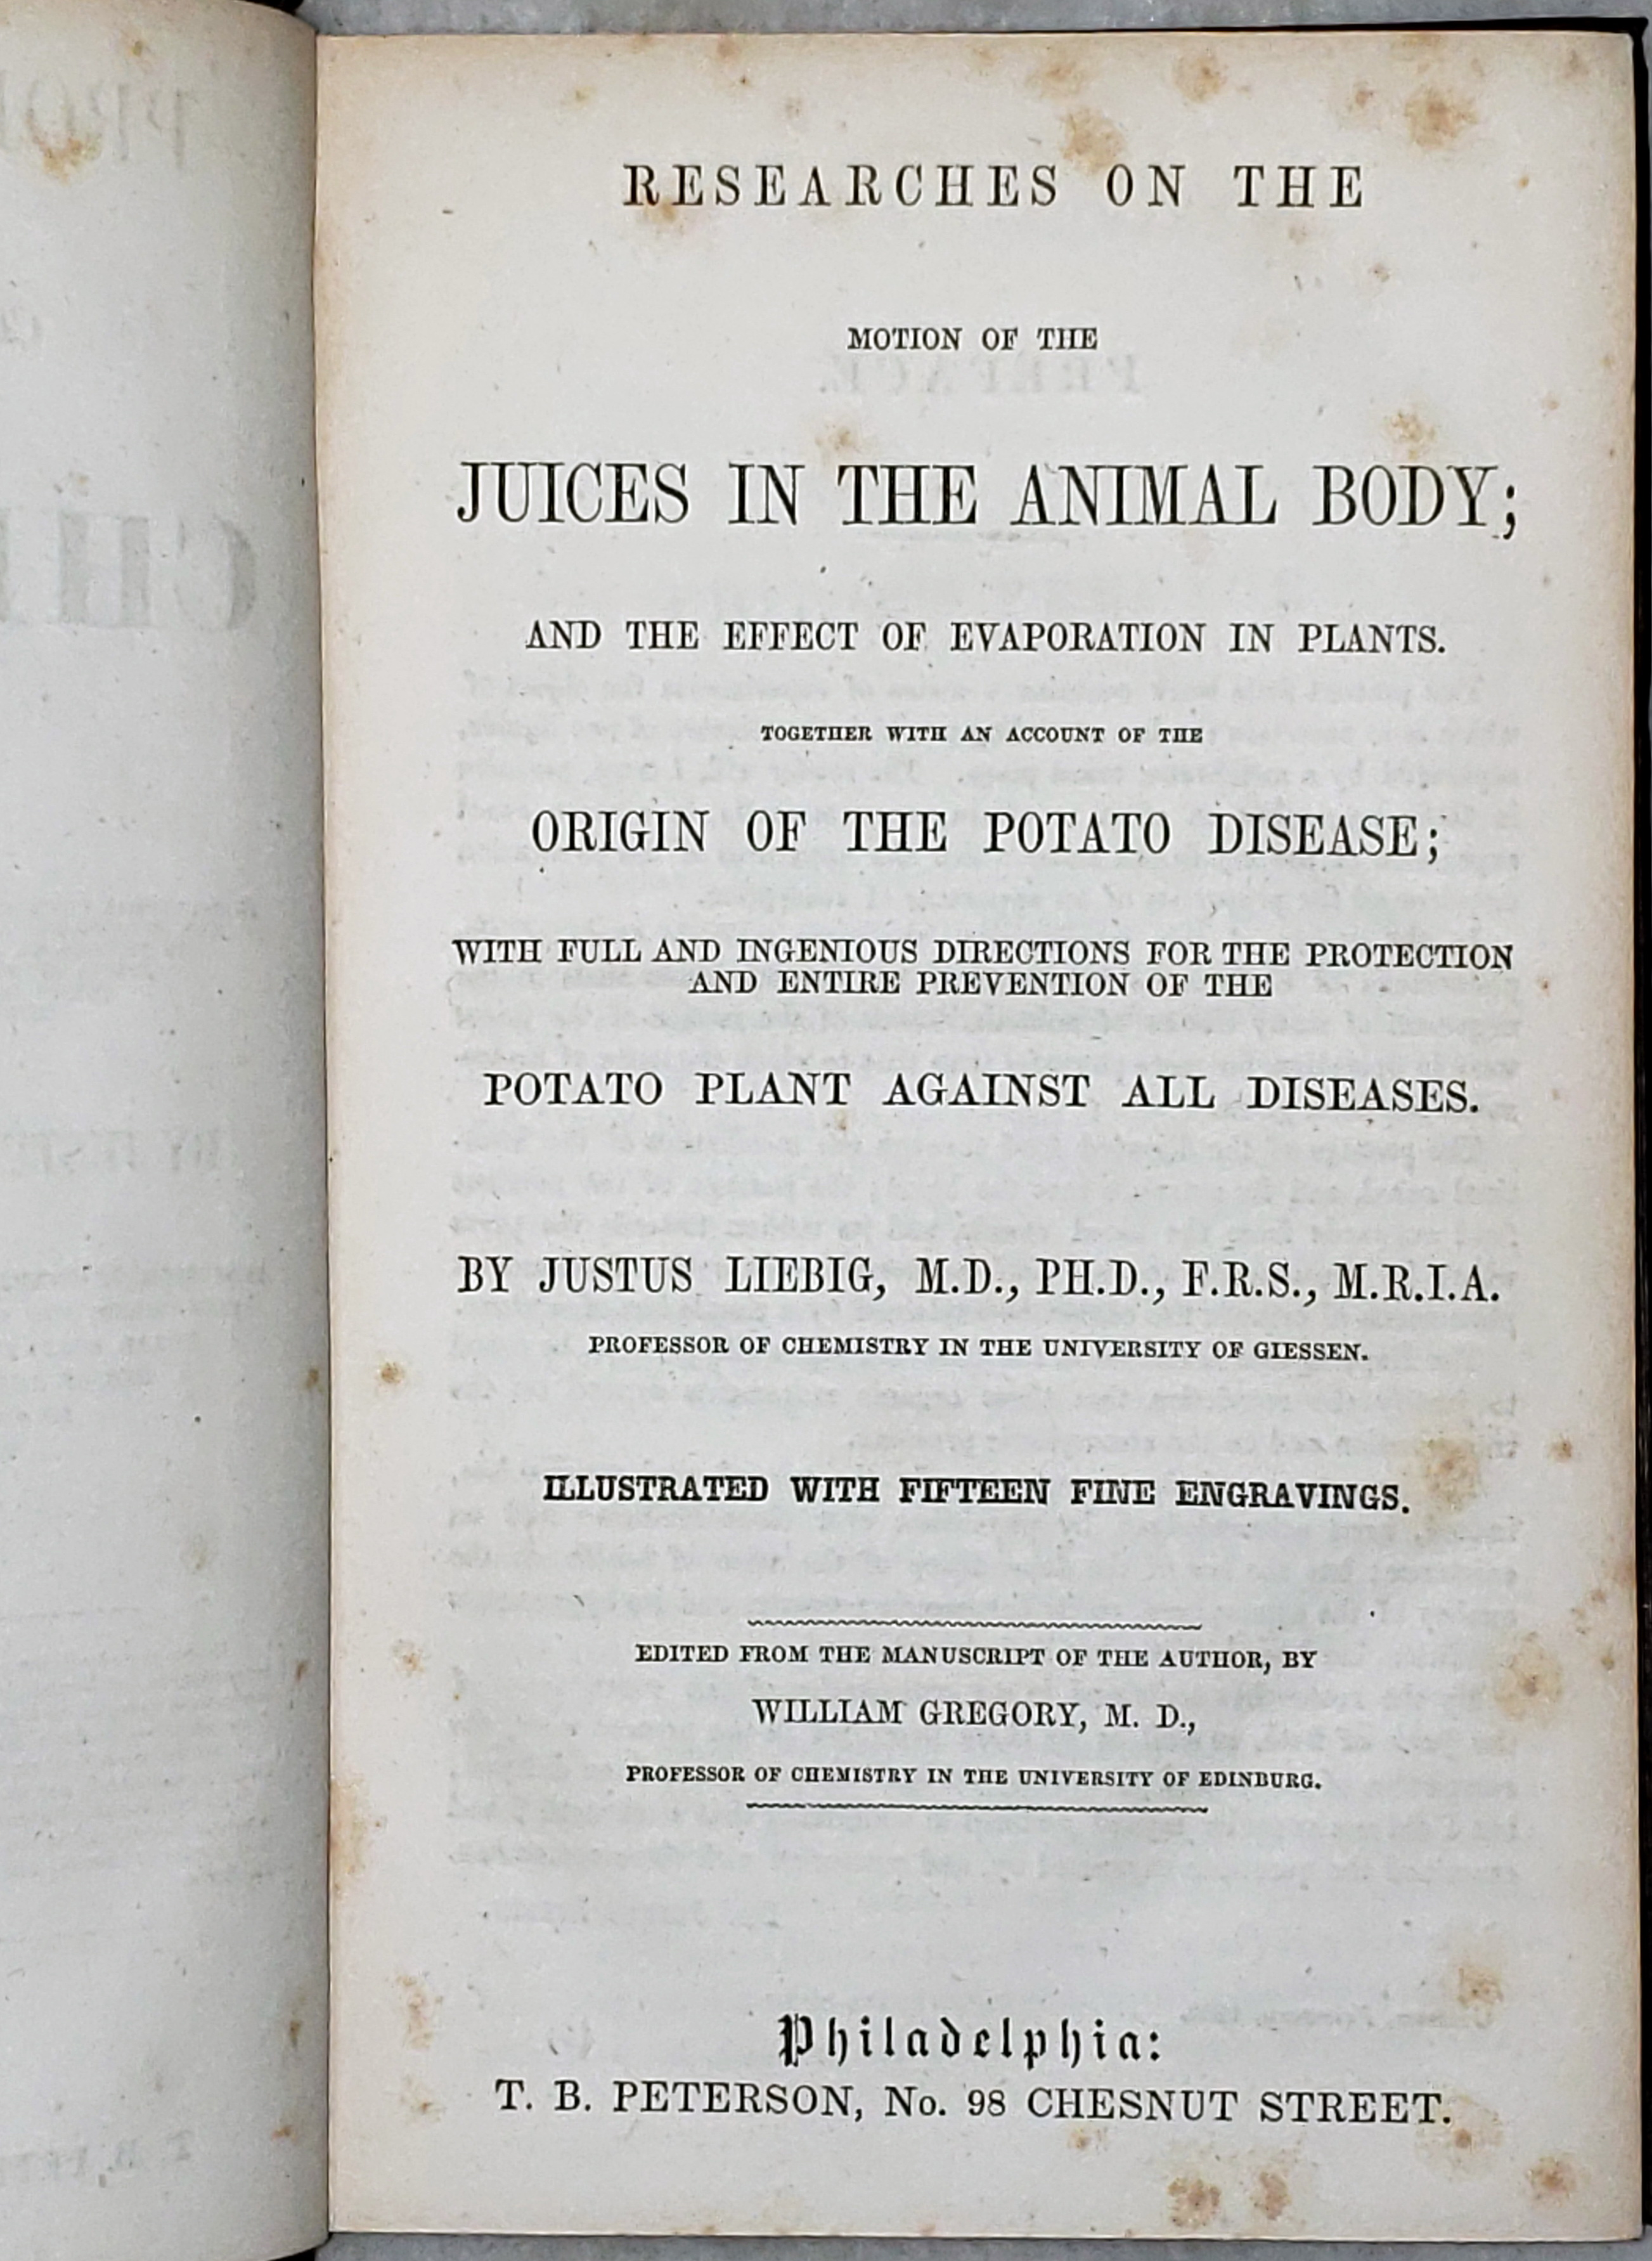 Image for Researches on the Motion of the Juices in the Animal Body; and the Effect of Evaporation in Plants. Together with an Account of the Origin of the Potato Disease; with Full and Ingenious Directions for the Protection and Entire Prevention of Potato Plant